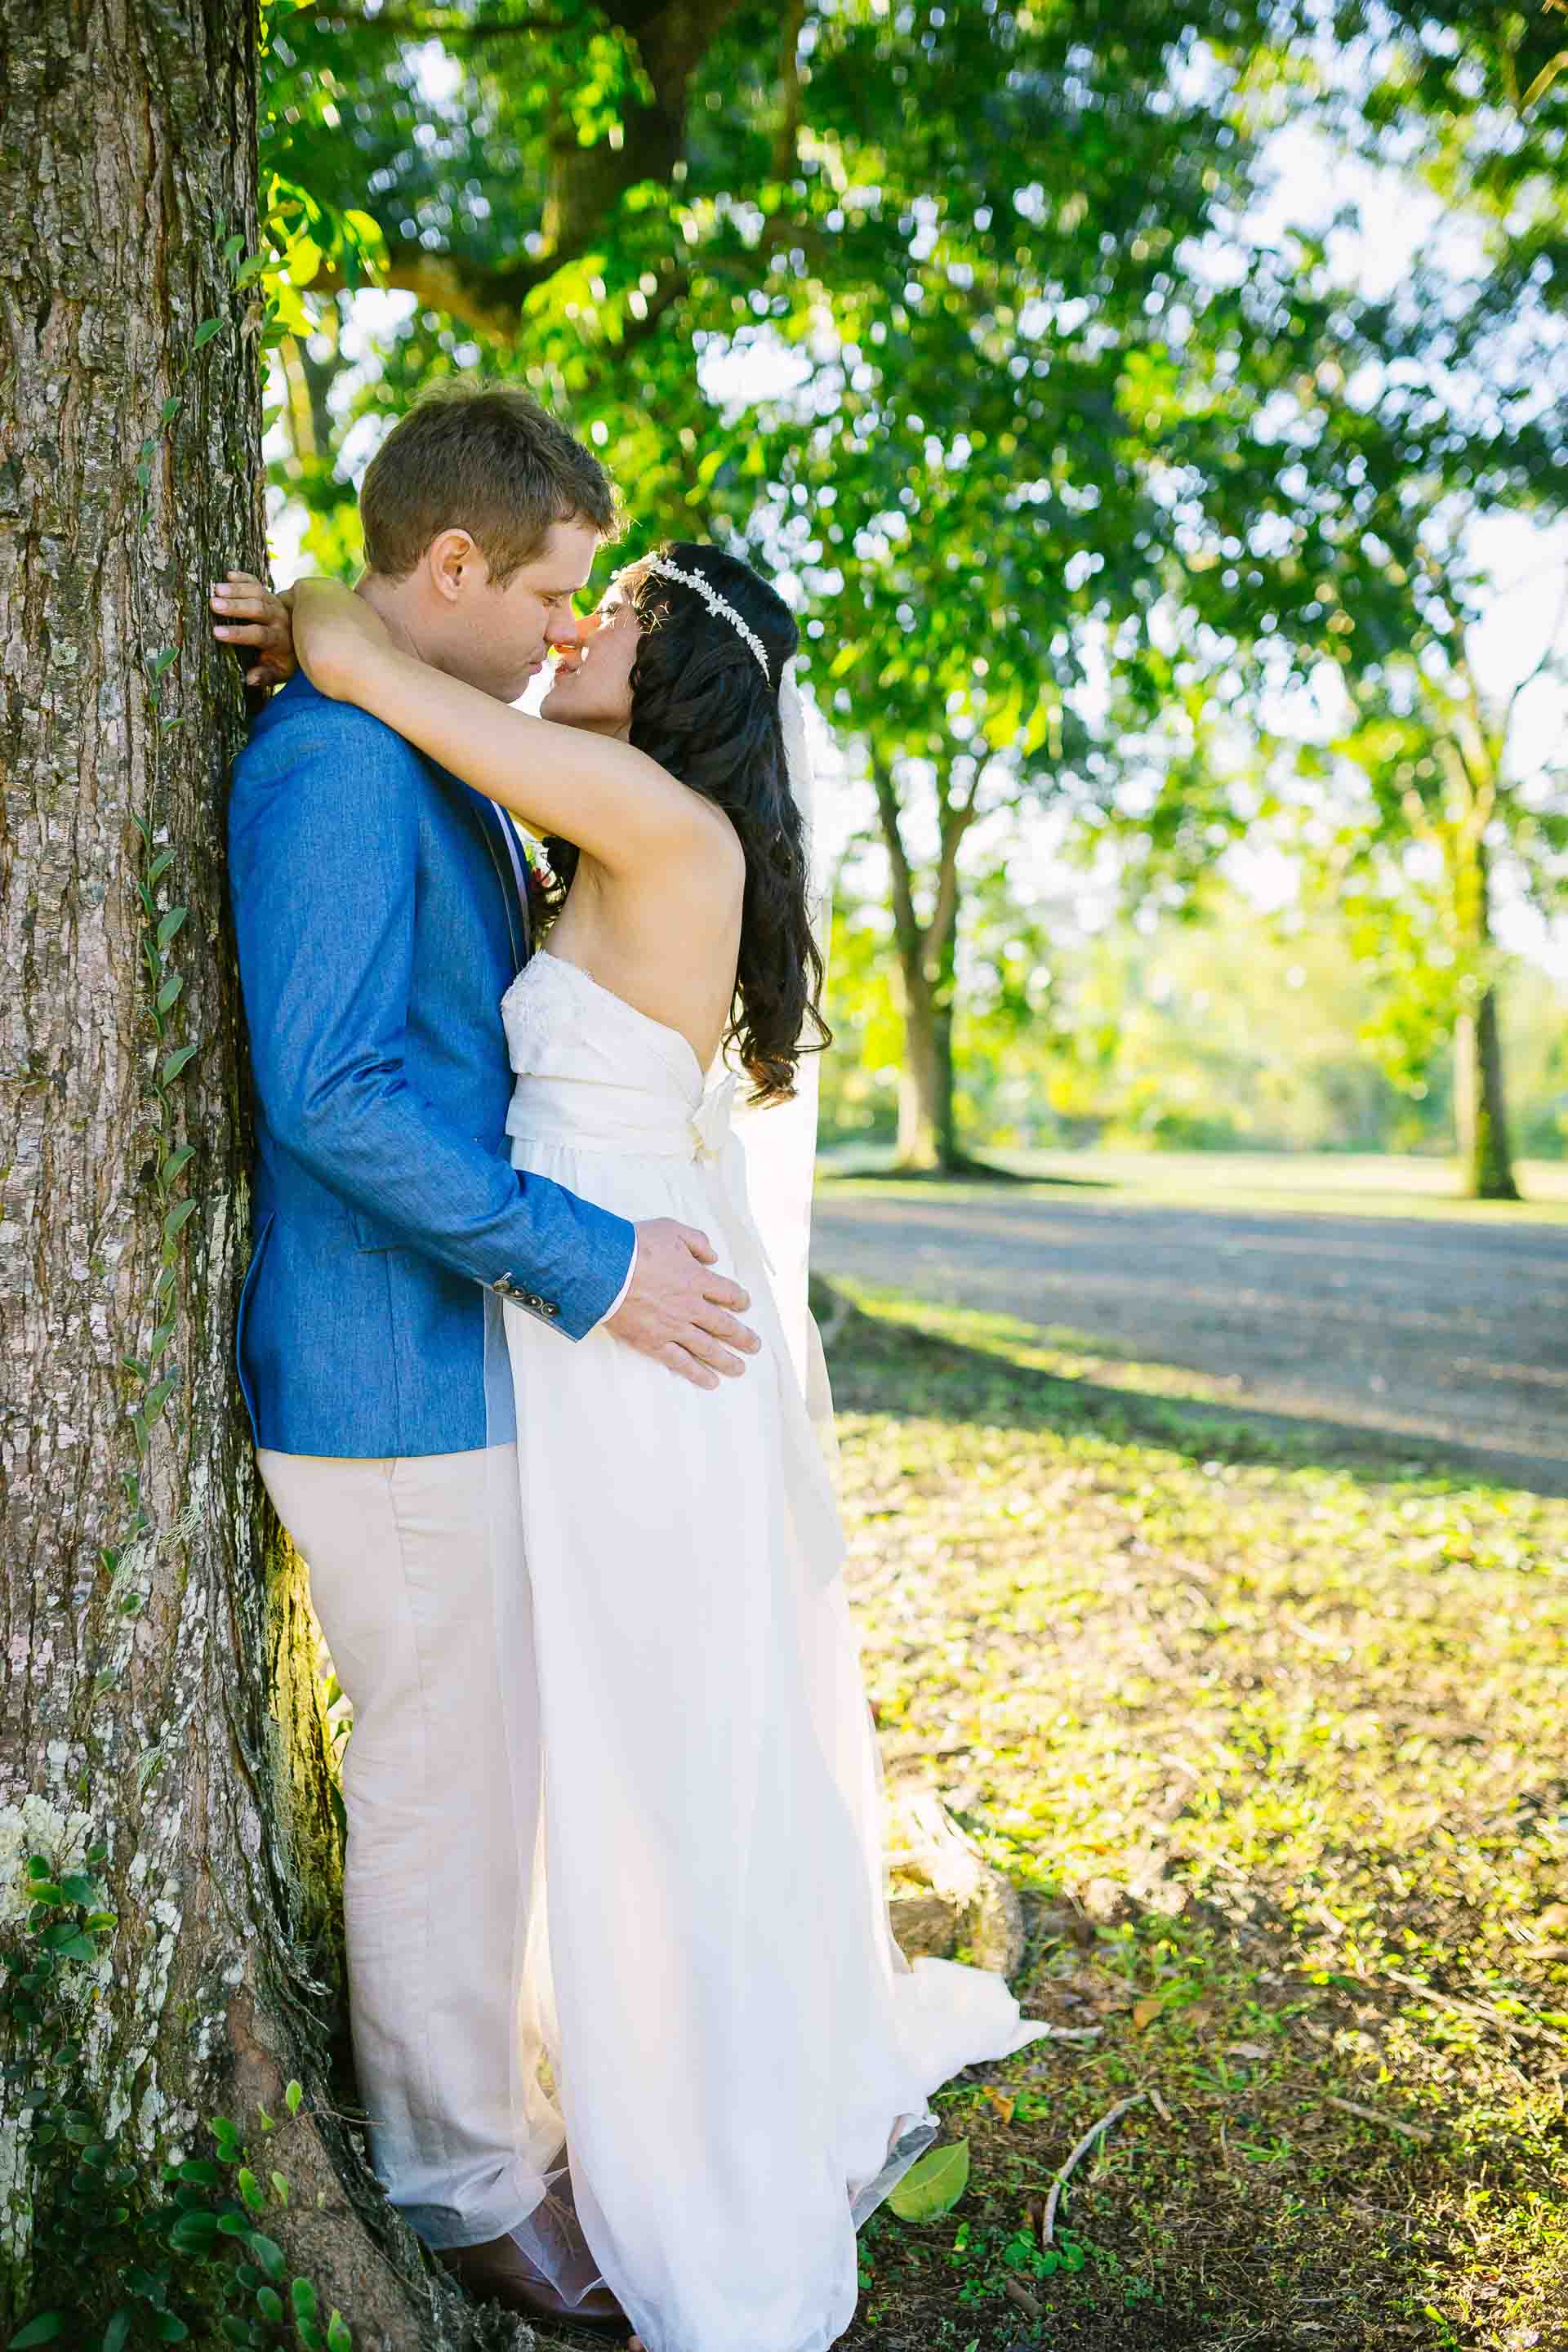 the couple kiss while leaning against a large tree